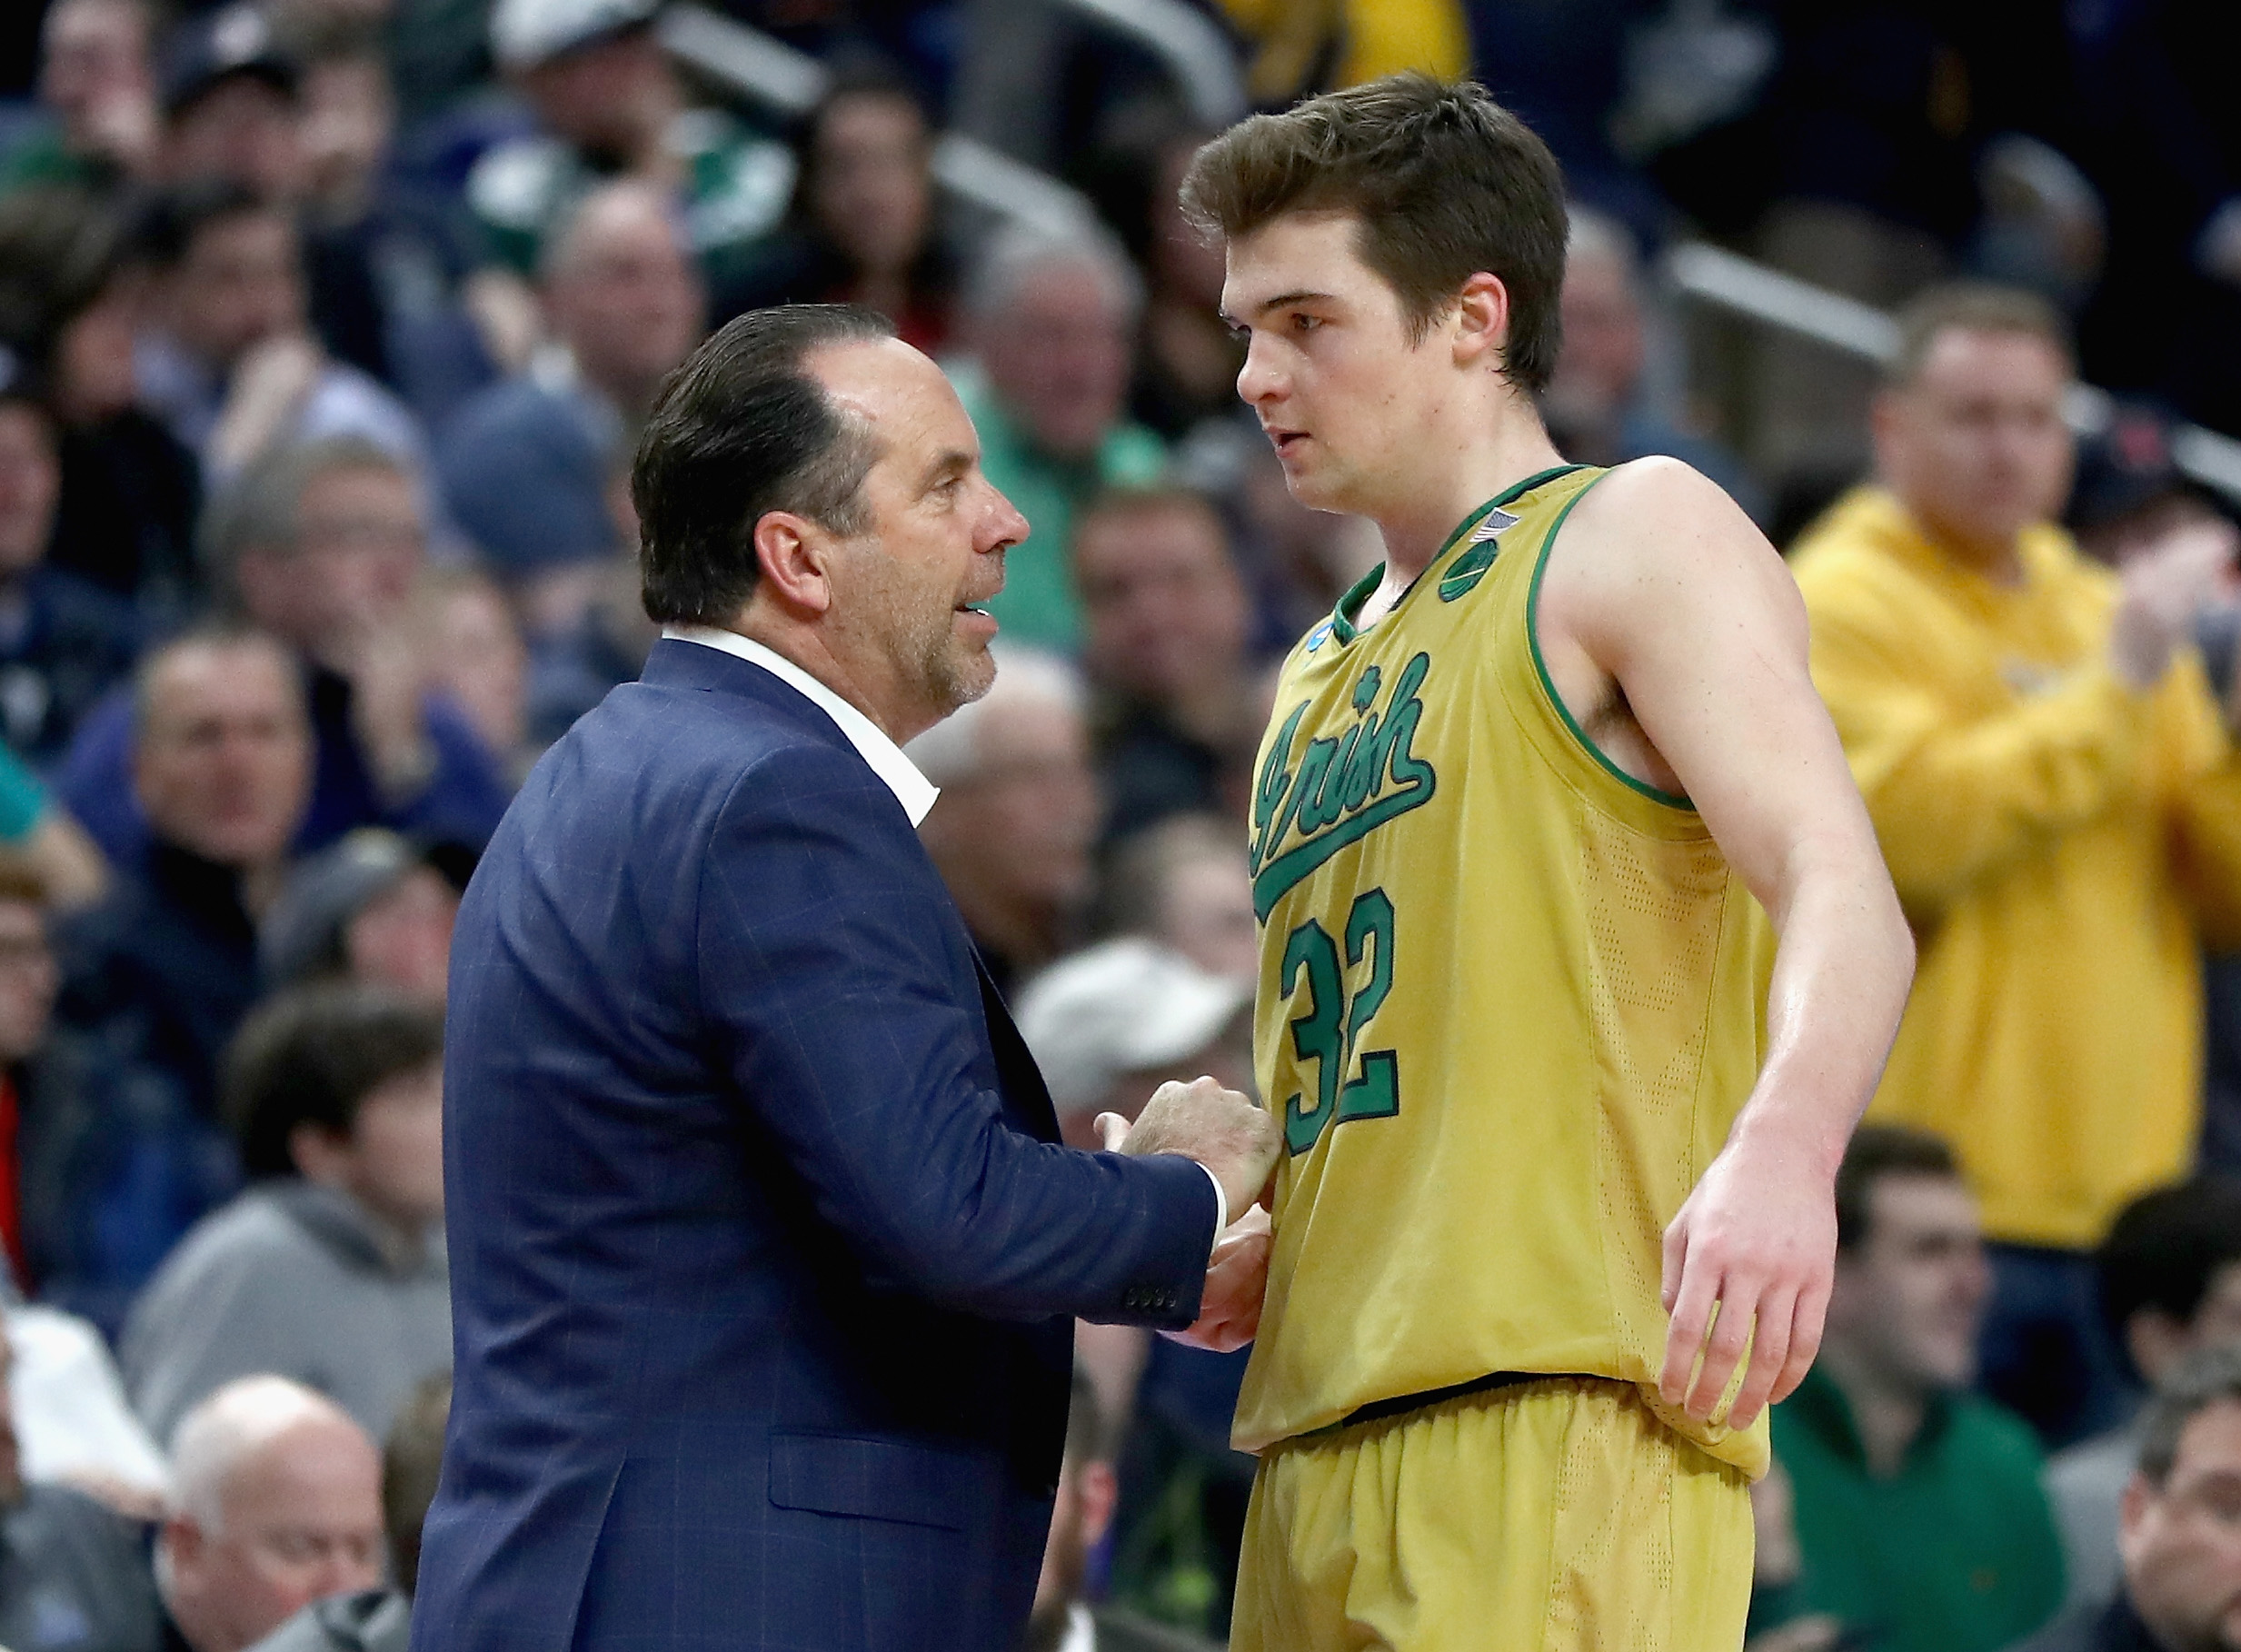 Recapping Notre Dame's Performance in the NCAA Tournament